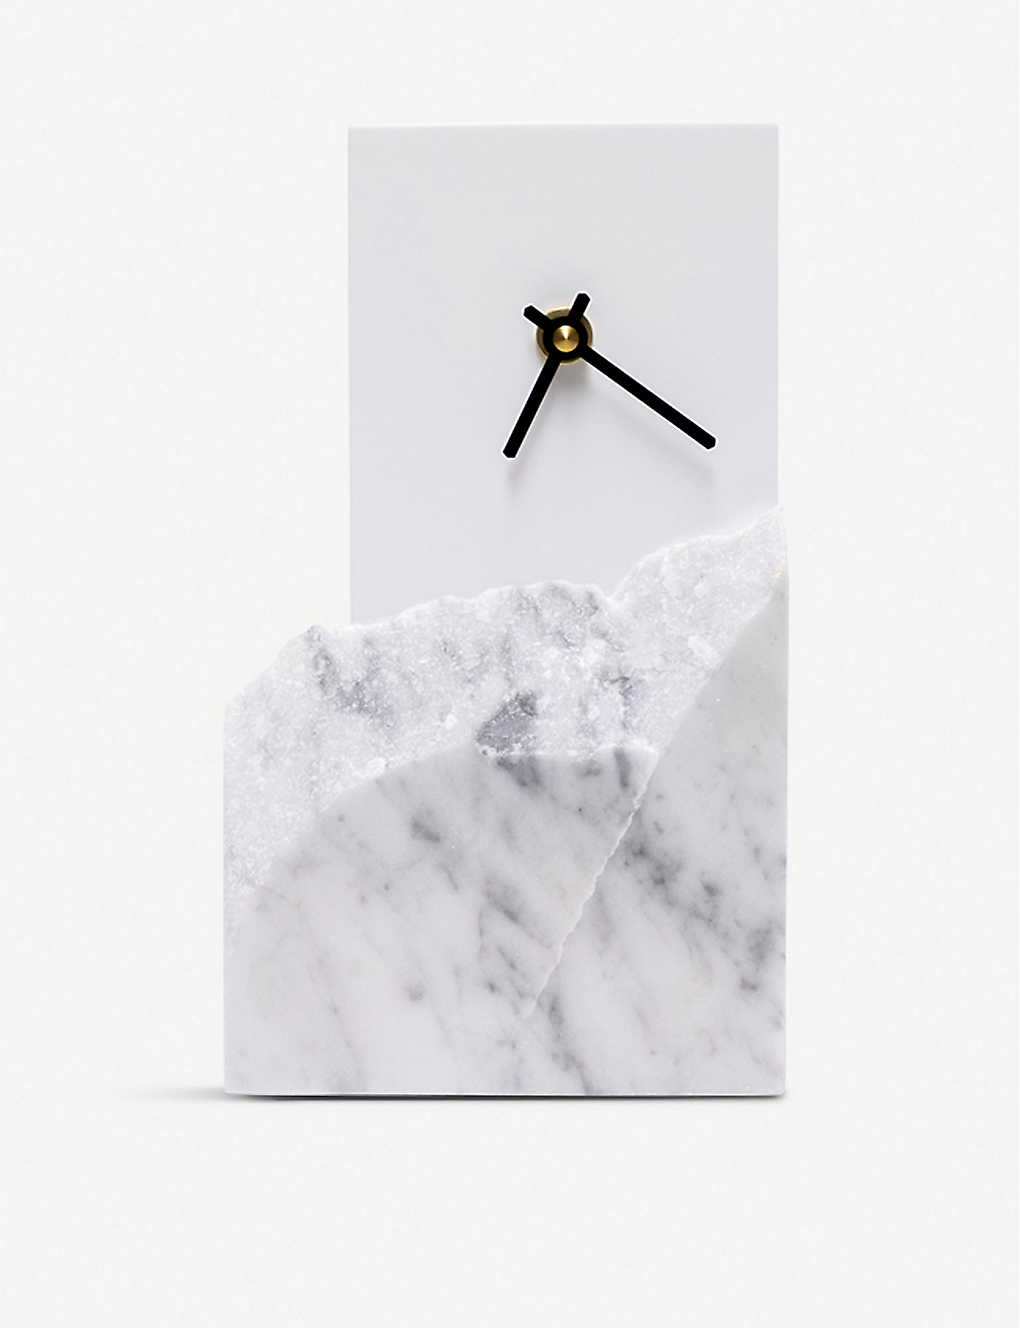 GOODWASTE: Minimal waste-corian and waste-marble table clock 22cm